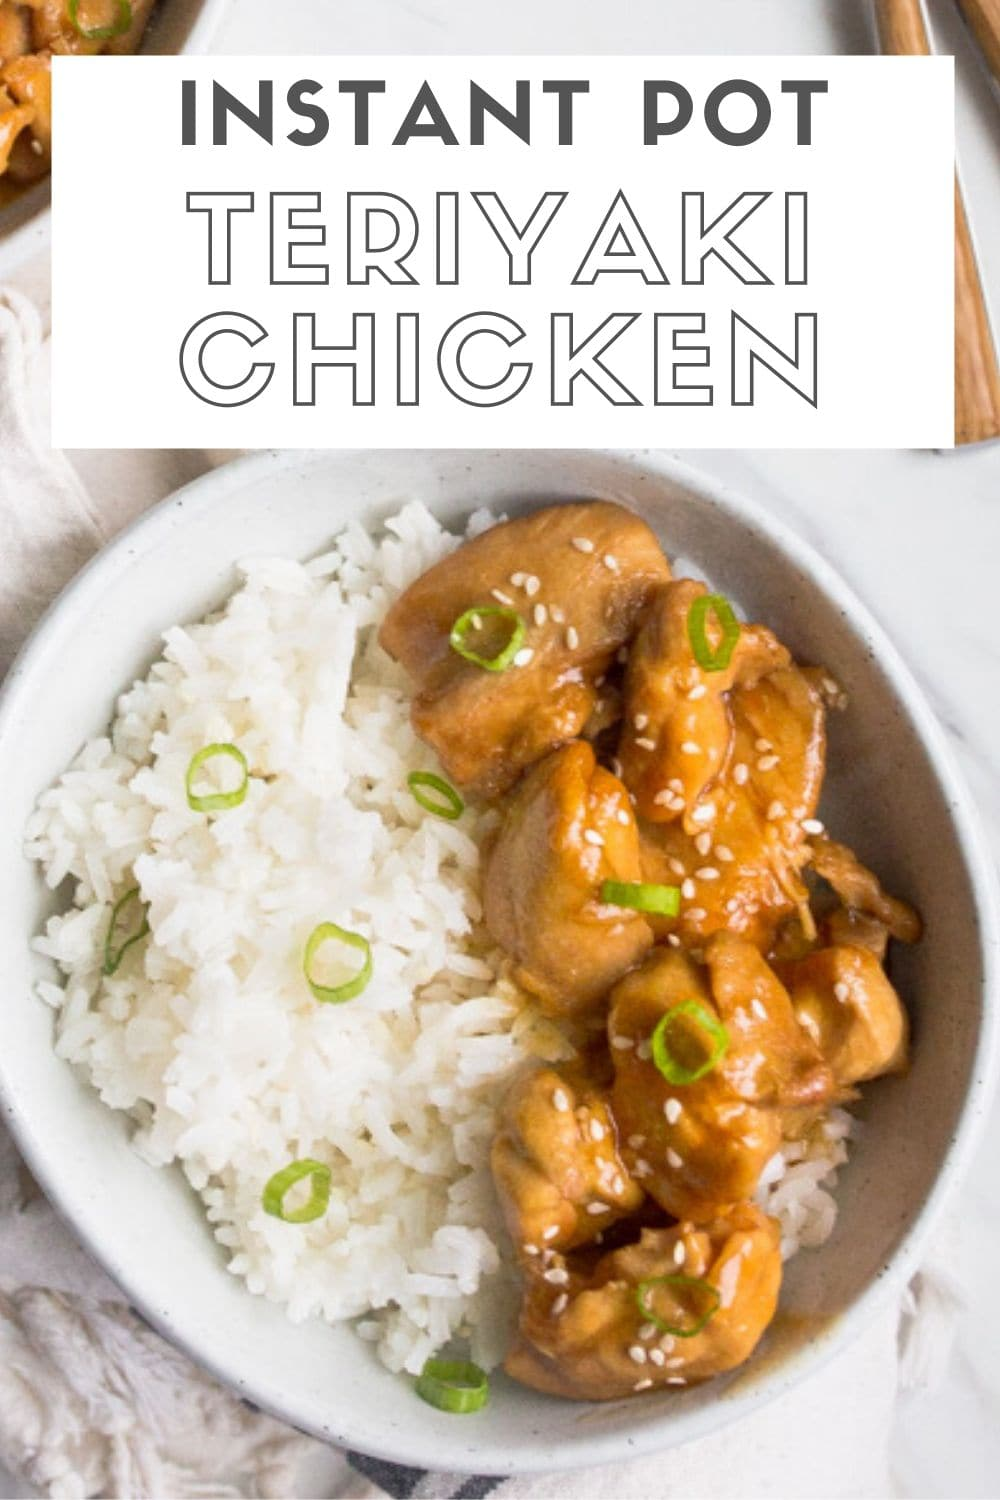 Instant pot teriyaki chicken is meltingly tender chicken bites in a sweet and salty teriyaki sauce. Homemade teriyaki sauce and chicken thighs bites make this a quick and kid friendly chicken dinner.